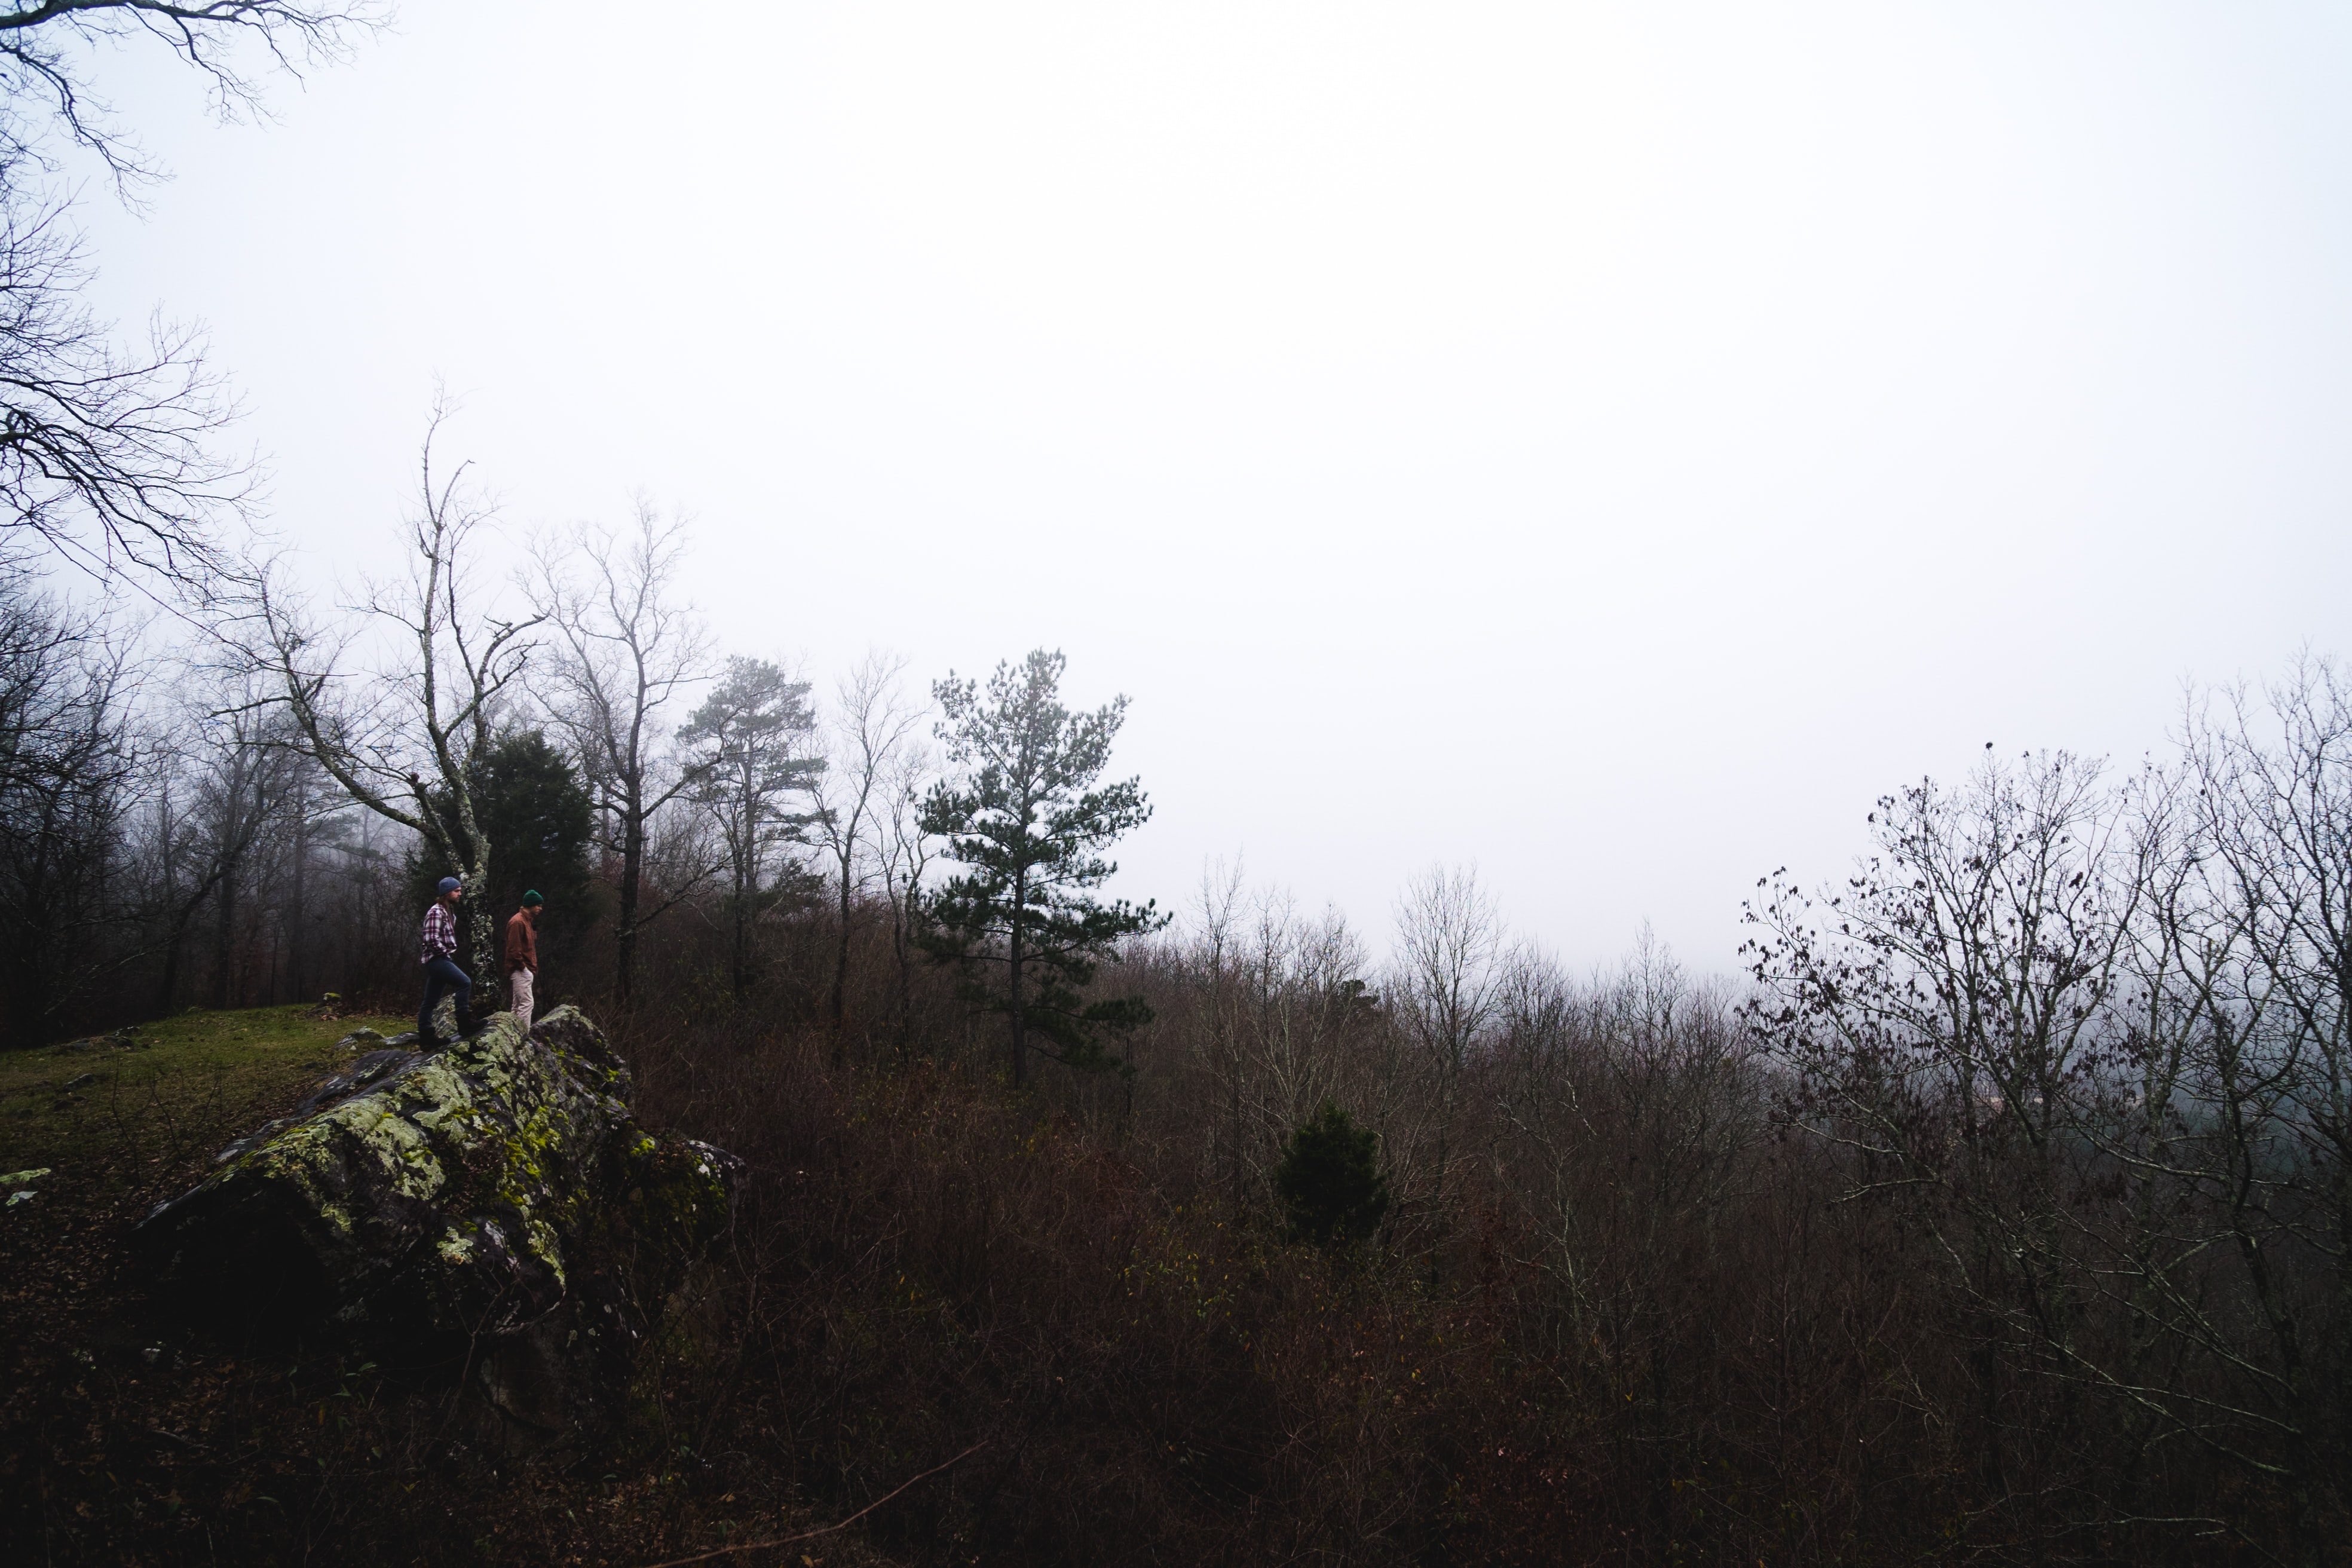 Two people on a mossy rock overlooking dry shrubs in Oak Mountain State Park